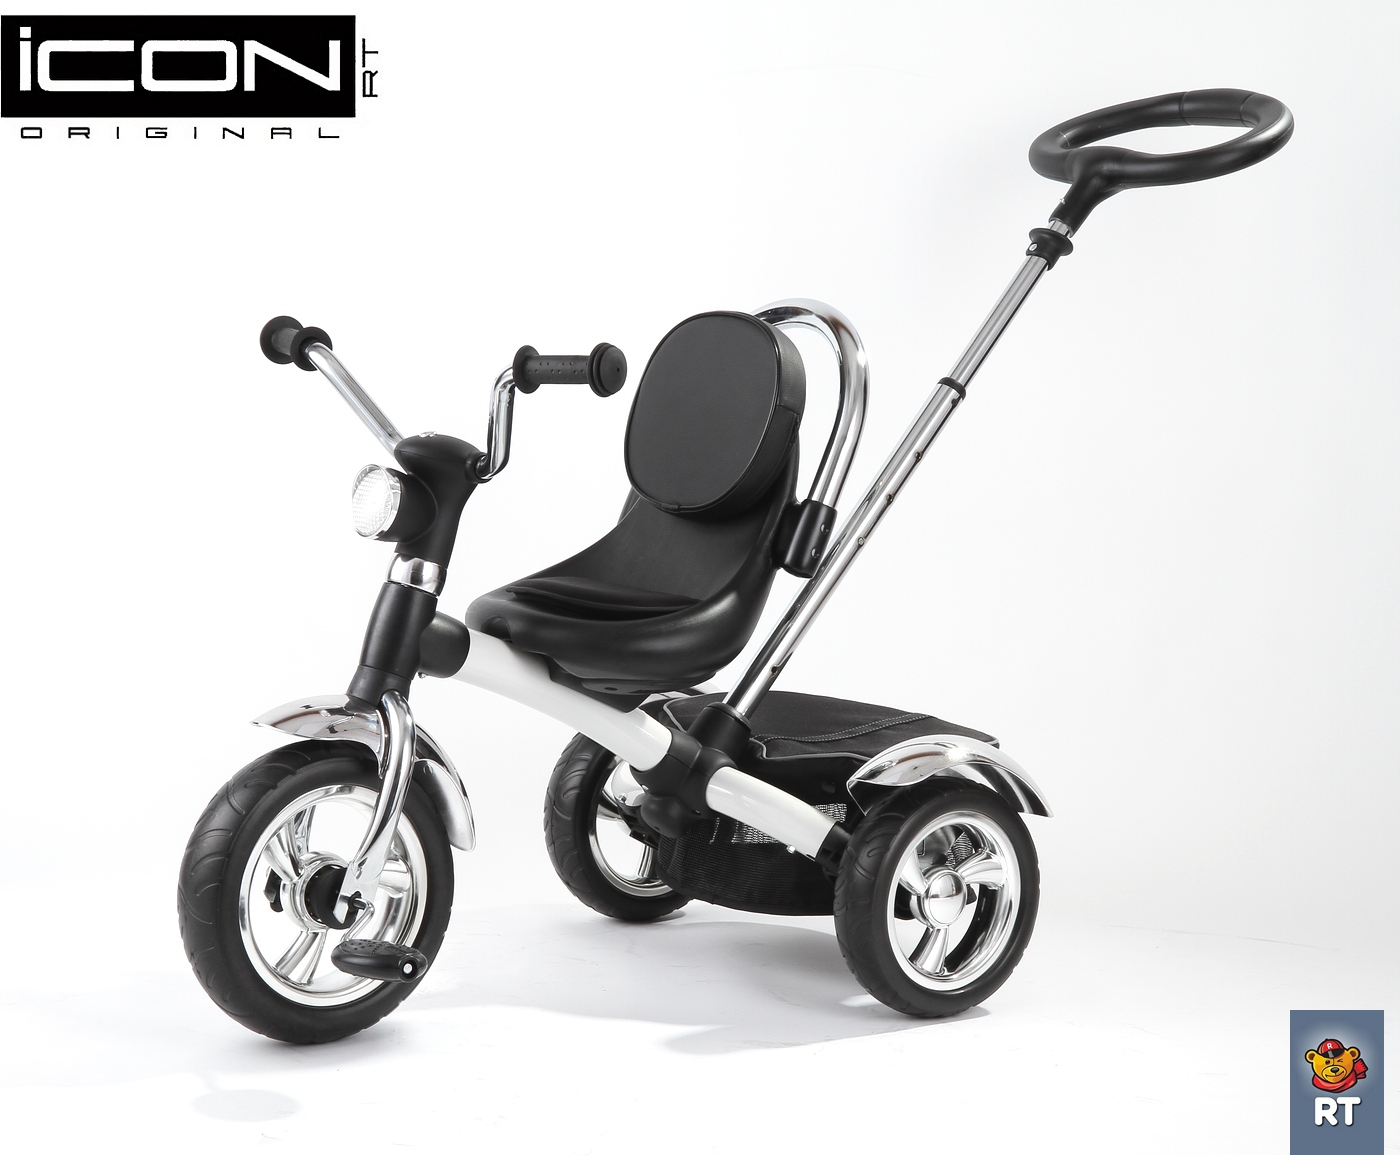 Велосипед 3-колесный Icon 4 RT original black mat car